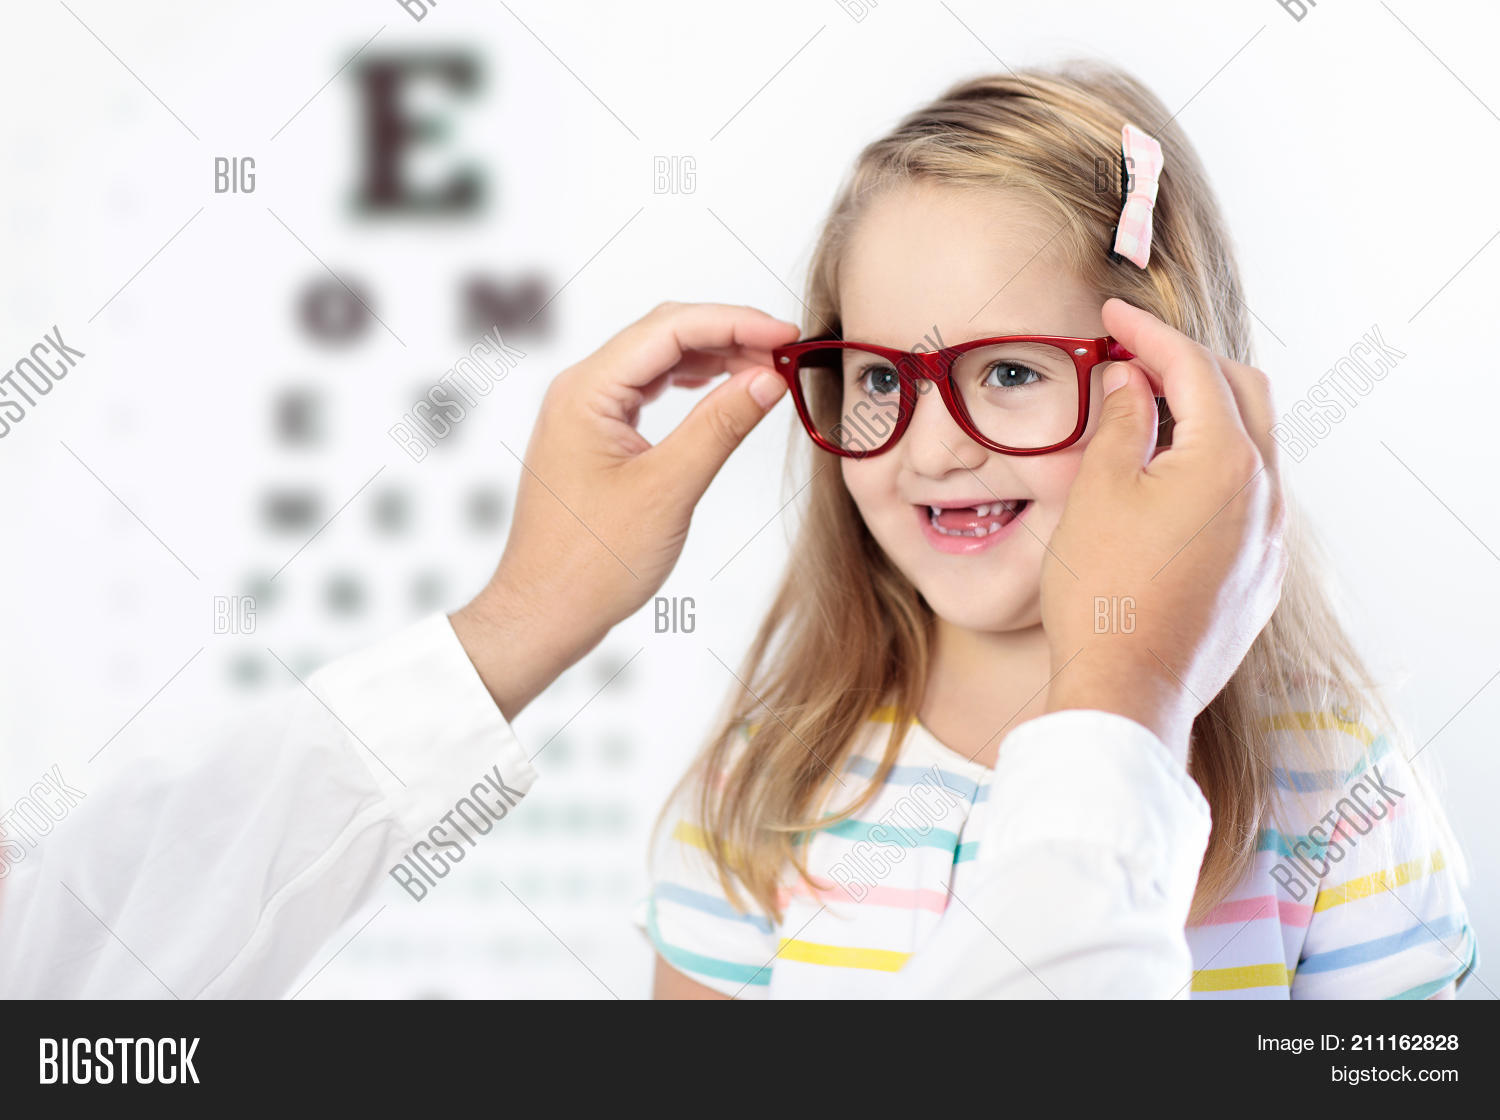 Child eye sight test little kid image photo bigstock child at eye sight test little kid selecting glasses at optician store eyesight measurement geenschuldenfo Images